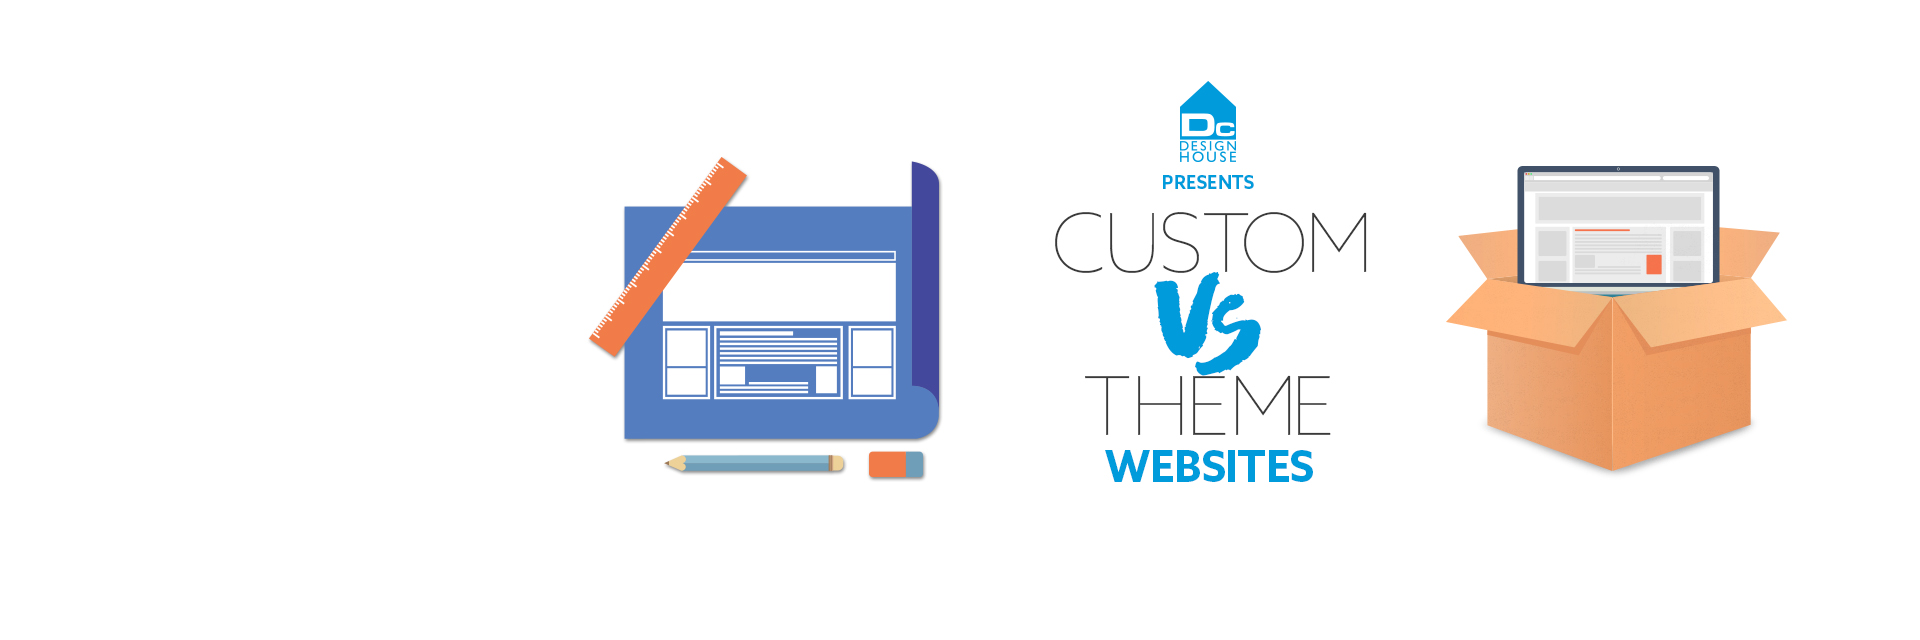 Dc Presents: Custom Vs Theme Websites – Part Two